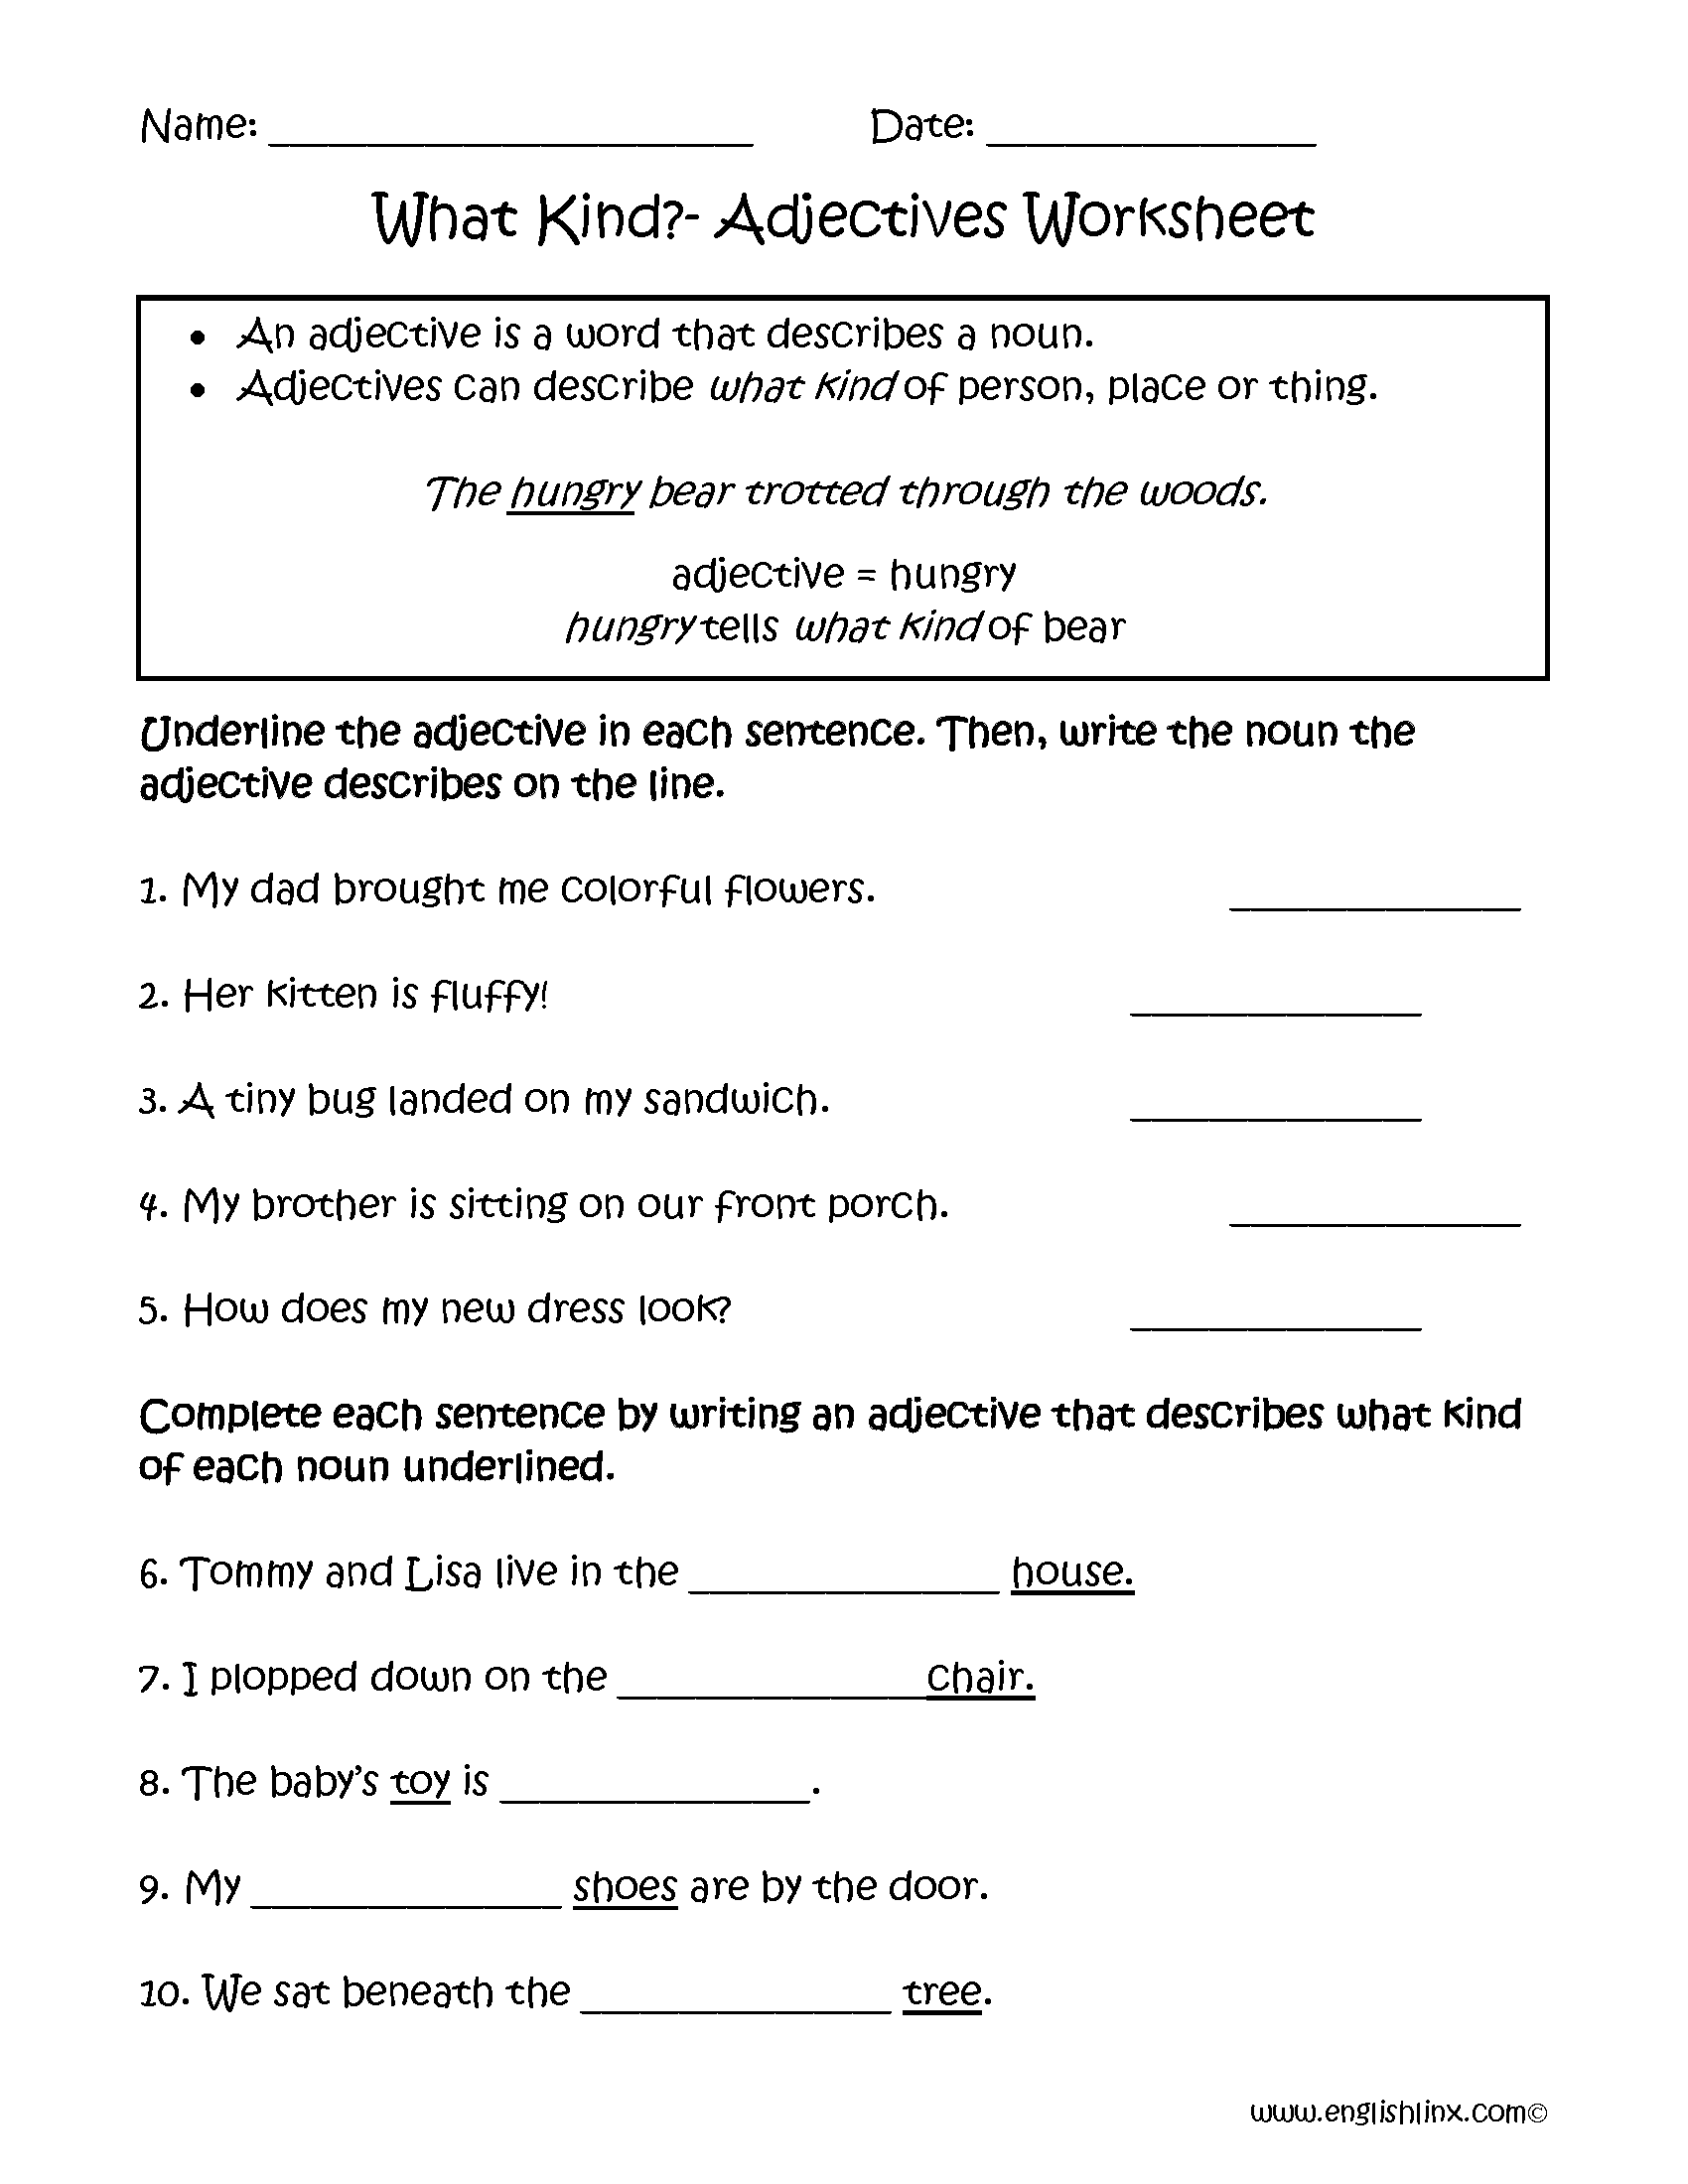 Underlining Adjectives Worksheet | Classroom ideas | Pinterest ...